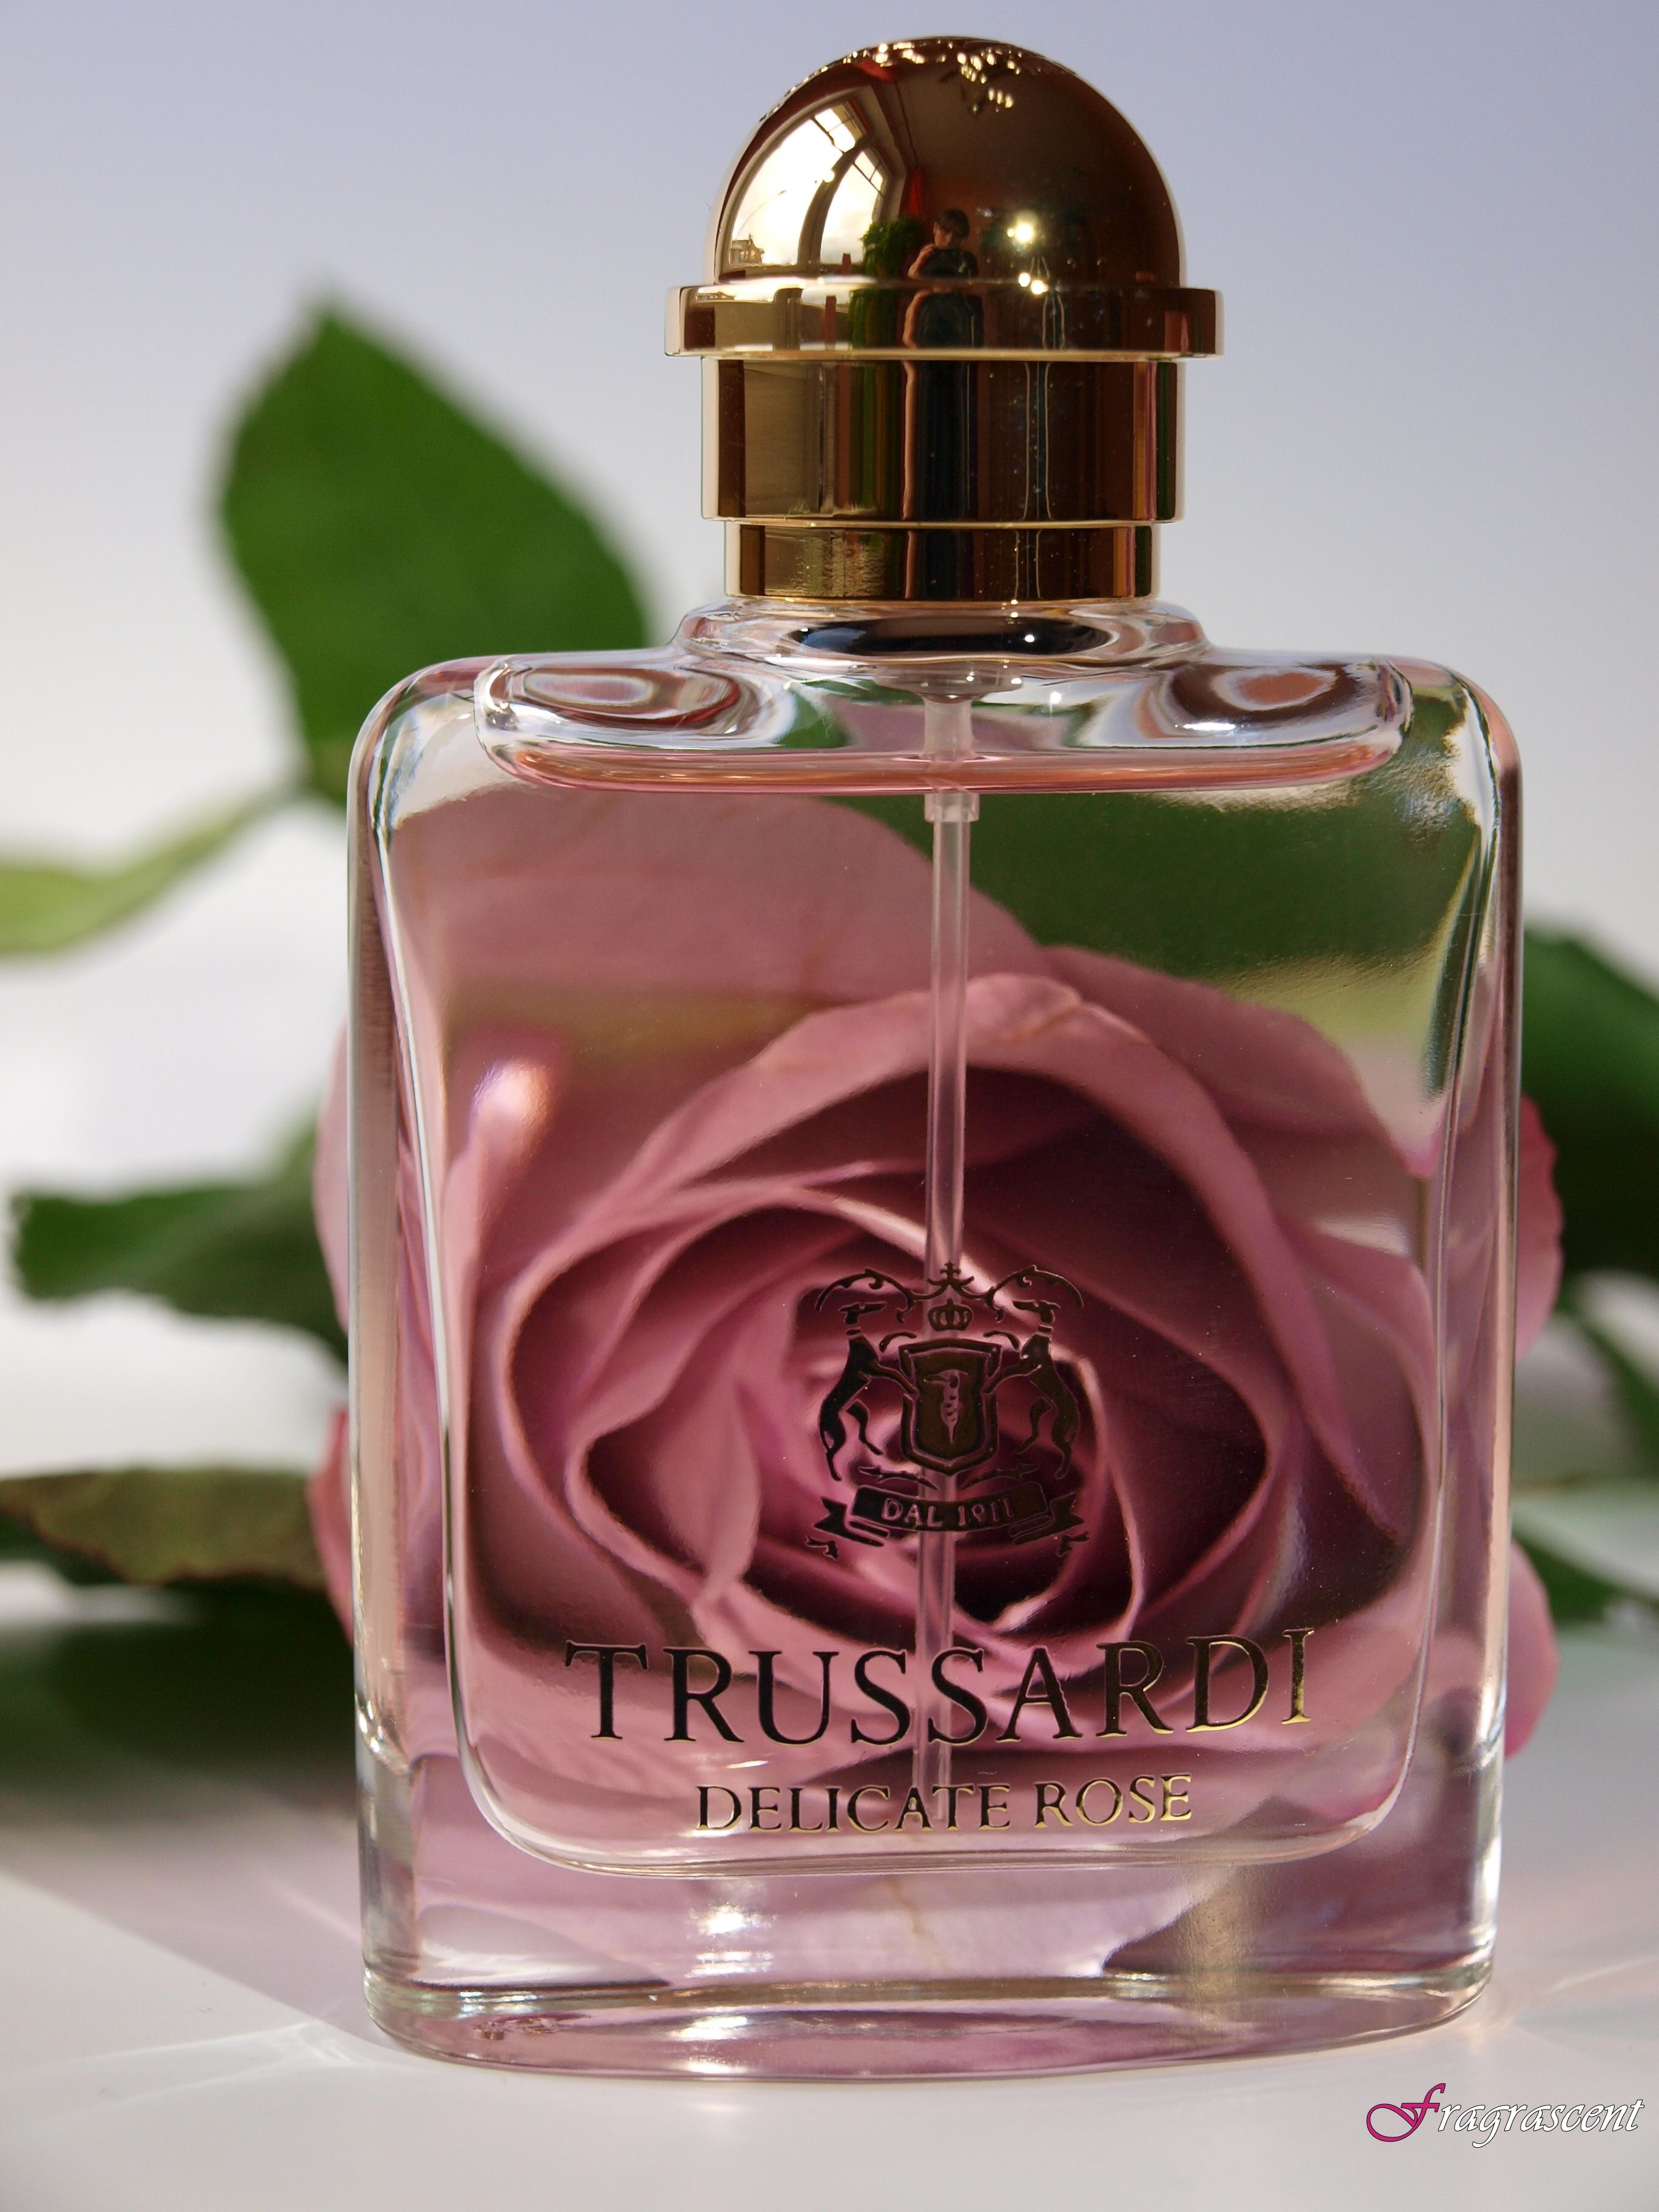 Trussardi Delicate Rose- Perfume Review On Fragrascent.pl